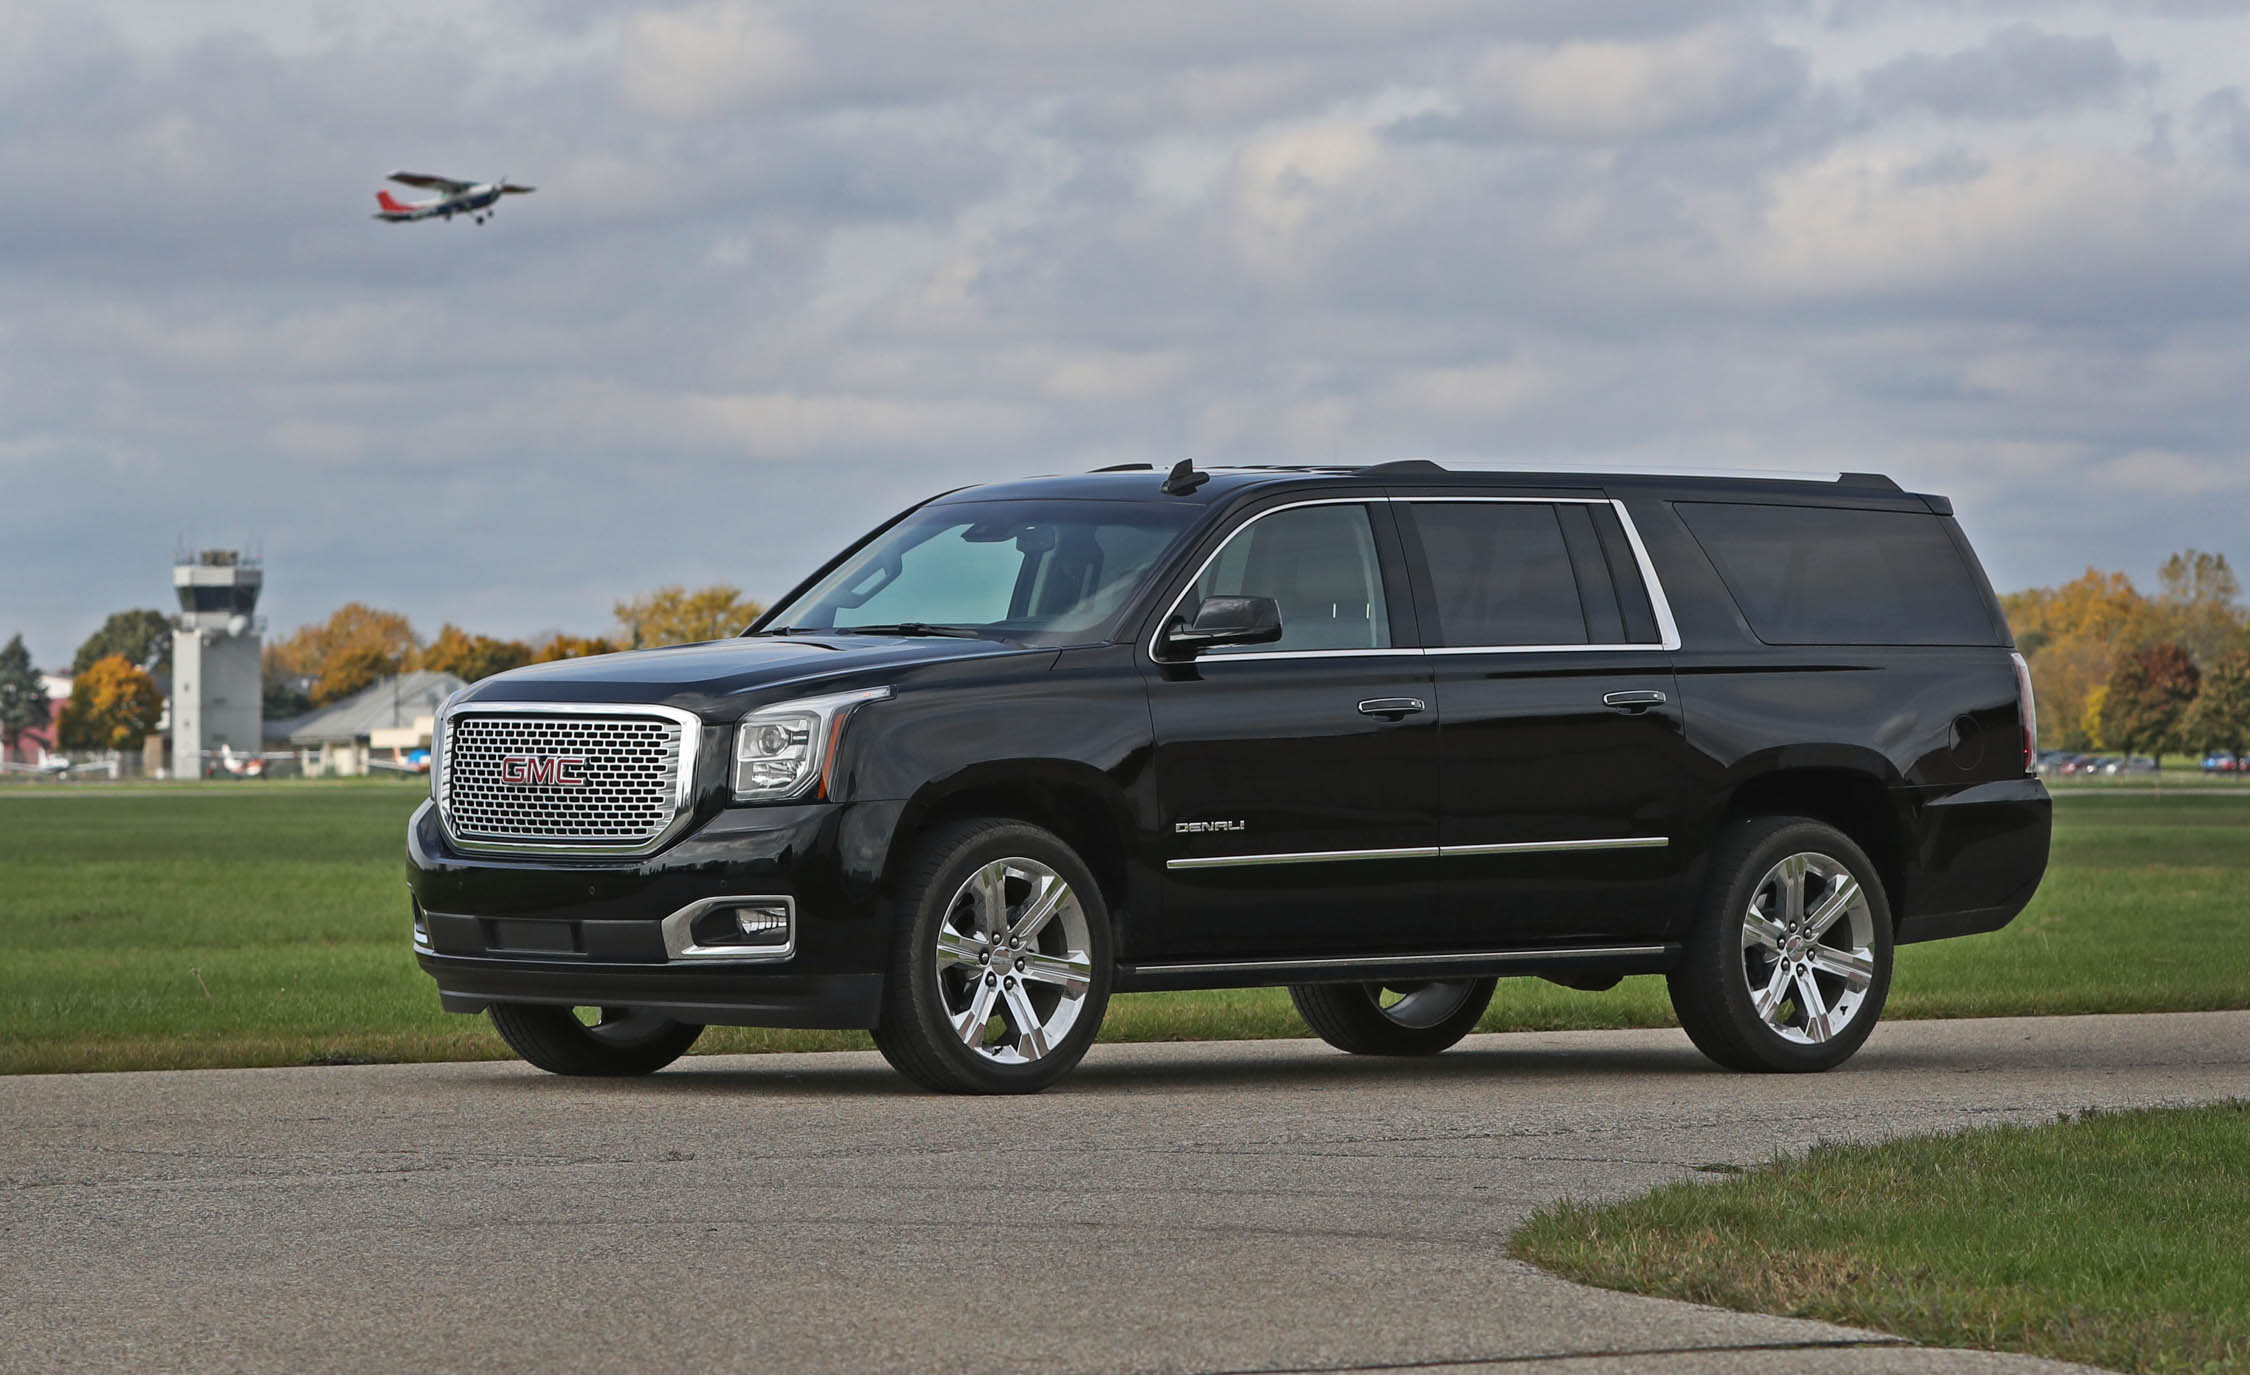 2017 Gmc Yukon Xl Denali Exterior Front And Side (Photo 4 of 26)